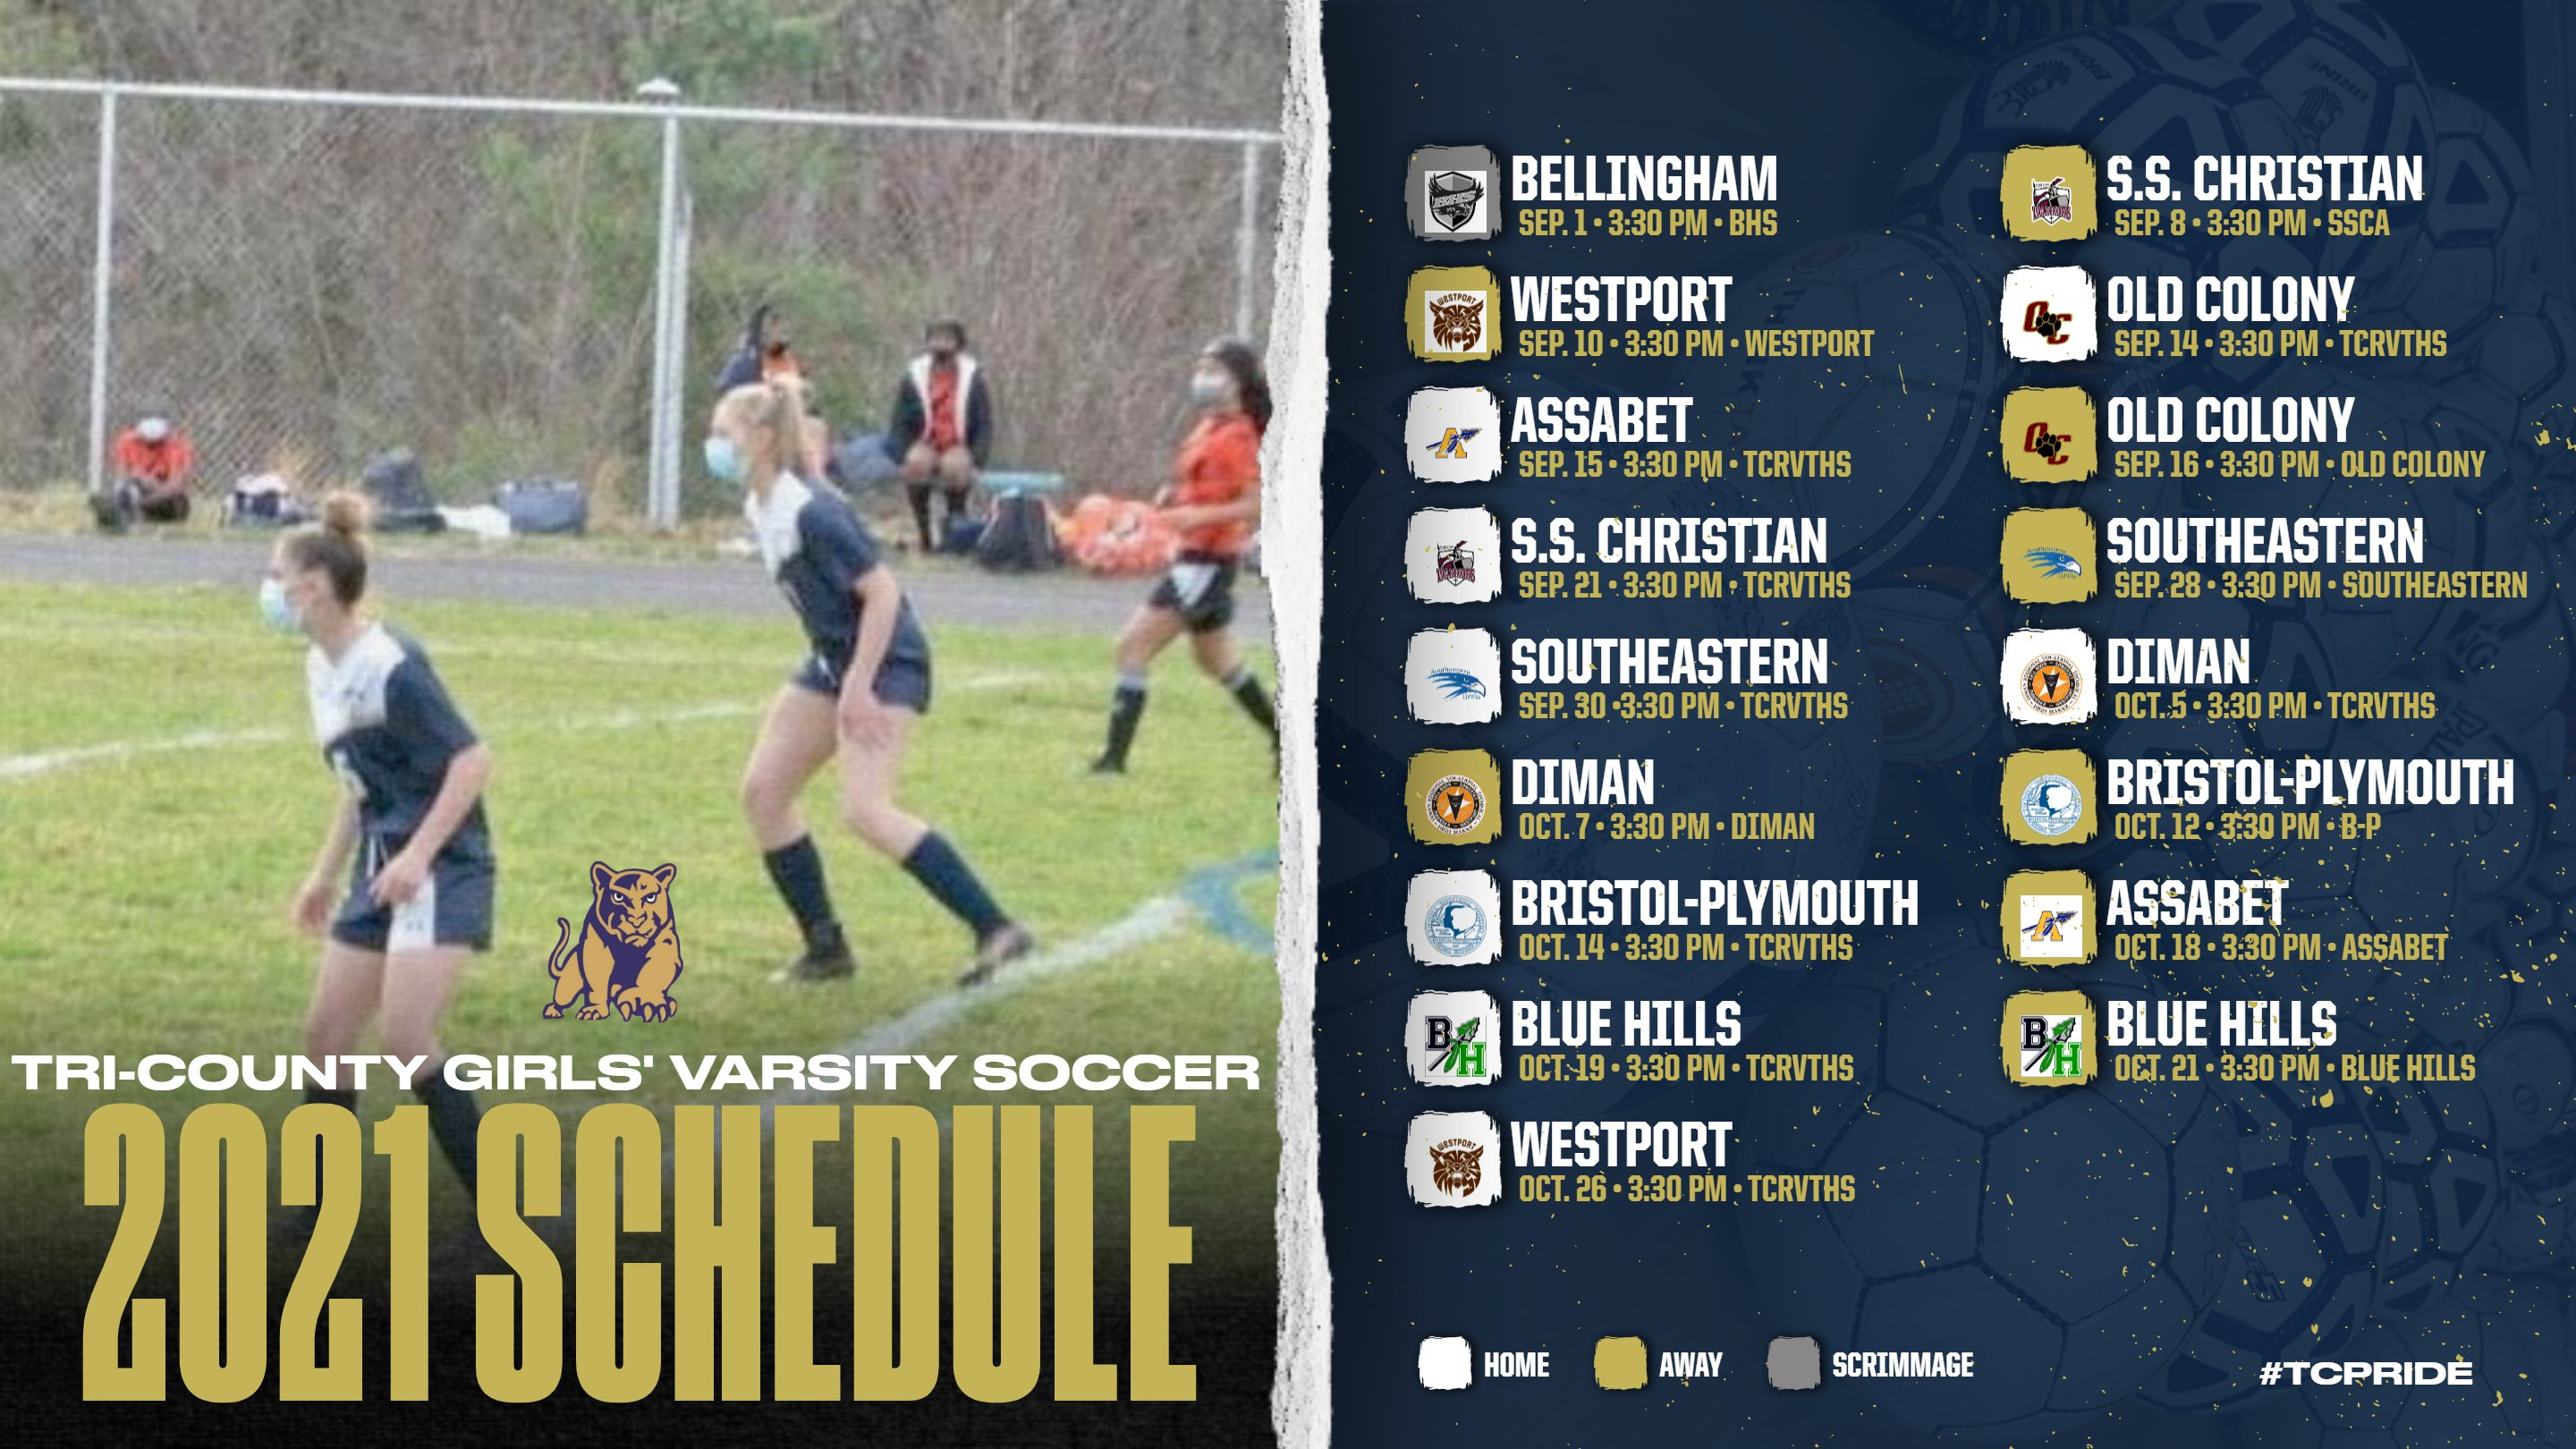 Tri-County RVTHS Athletics: varsity schedules for Fall 2021